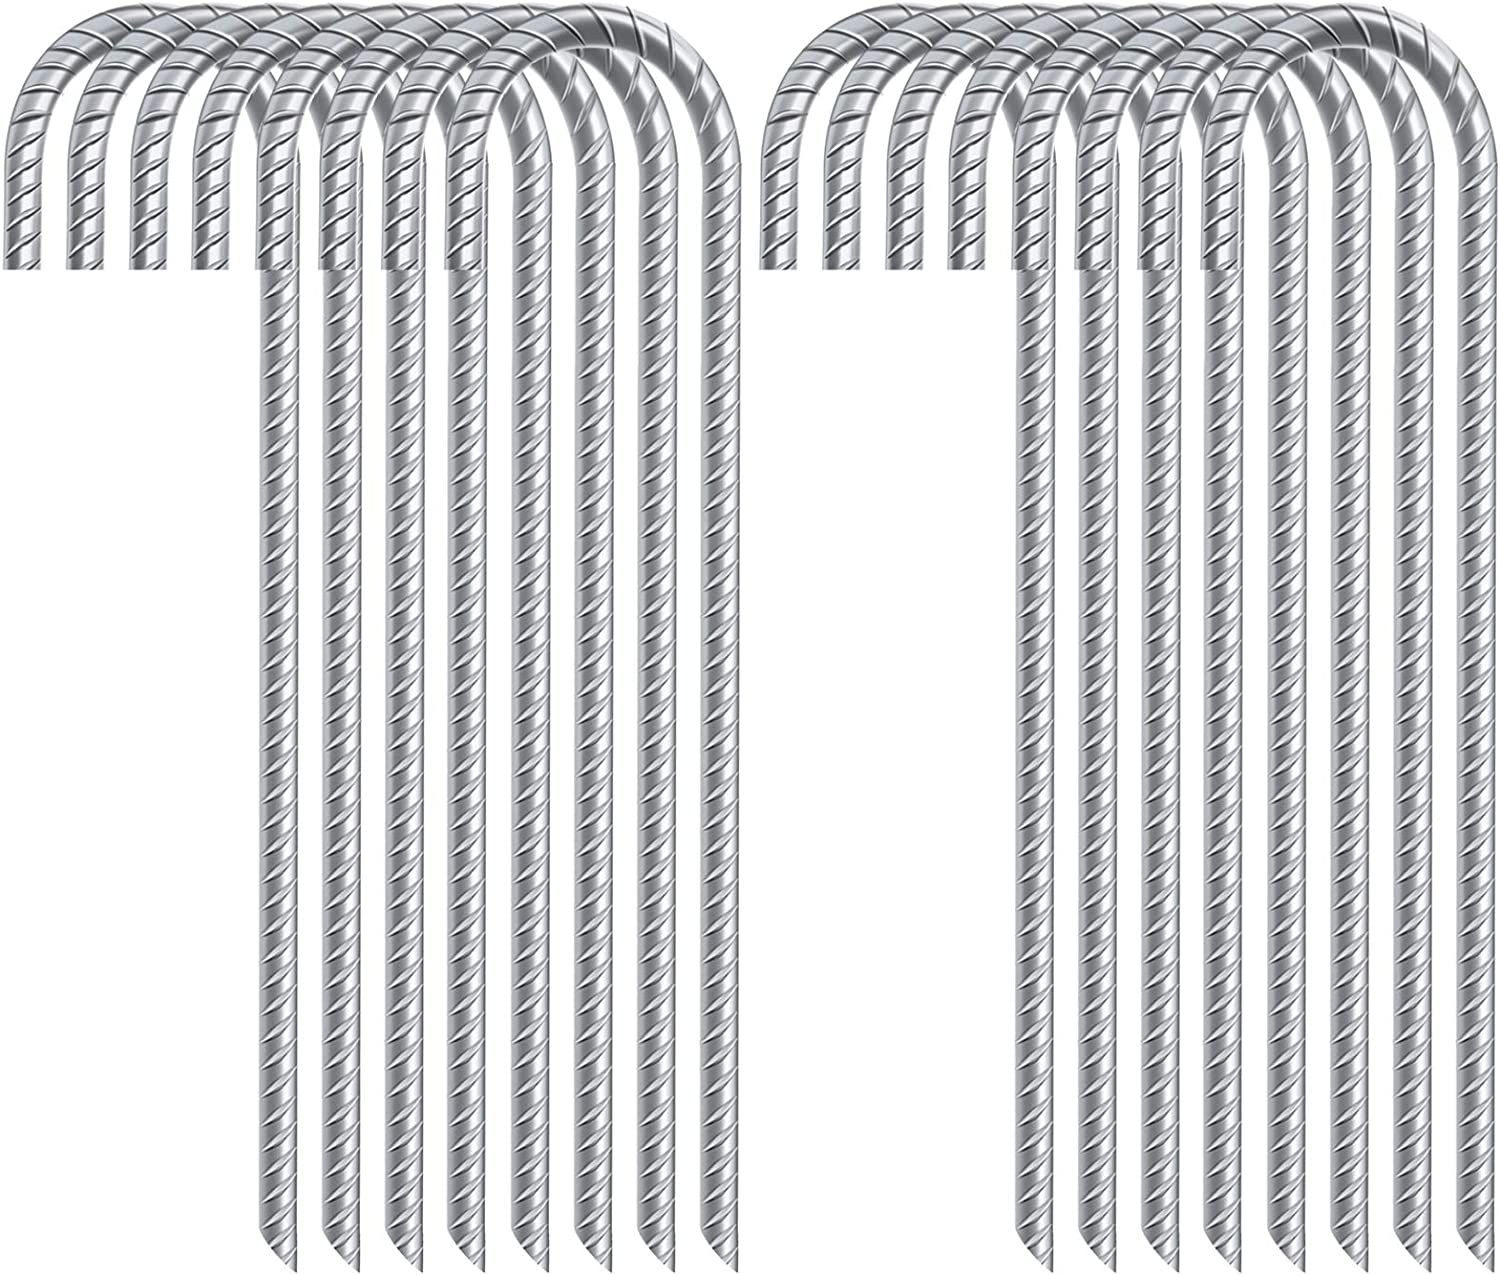 FEED GARDEN 12 Inch Galvanized Rebar Stakes Heavy Duty J Hook,Ground Stakes Tent Stakes Steel Ground Anchors,16 Pack,Silver